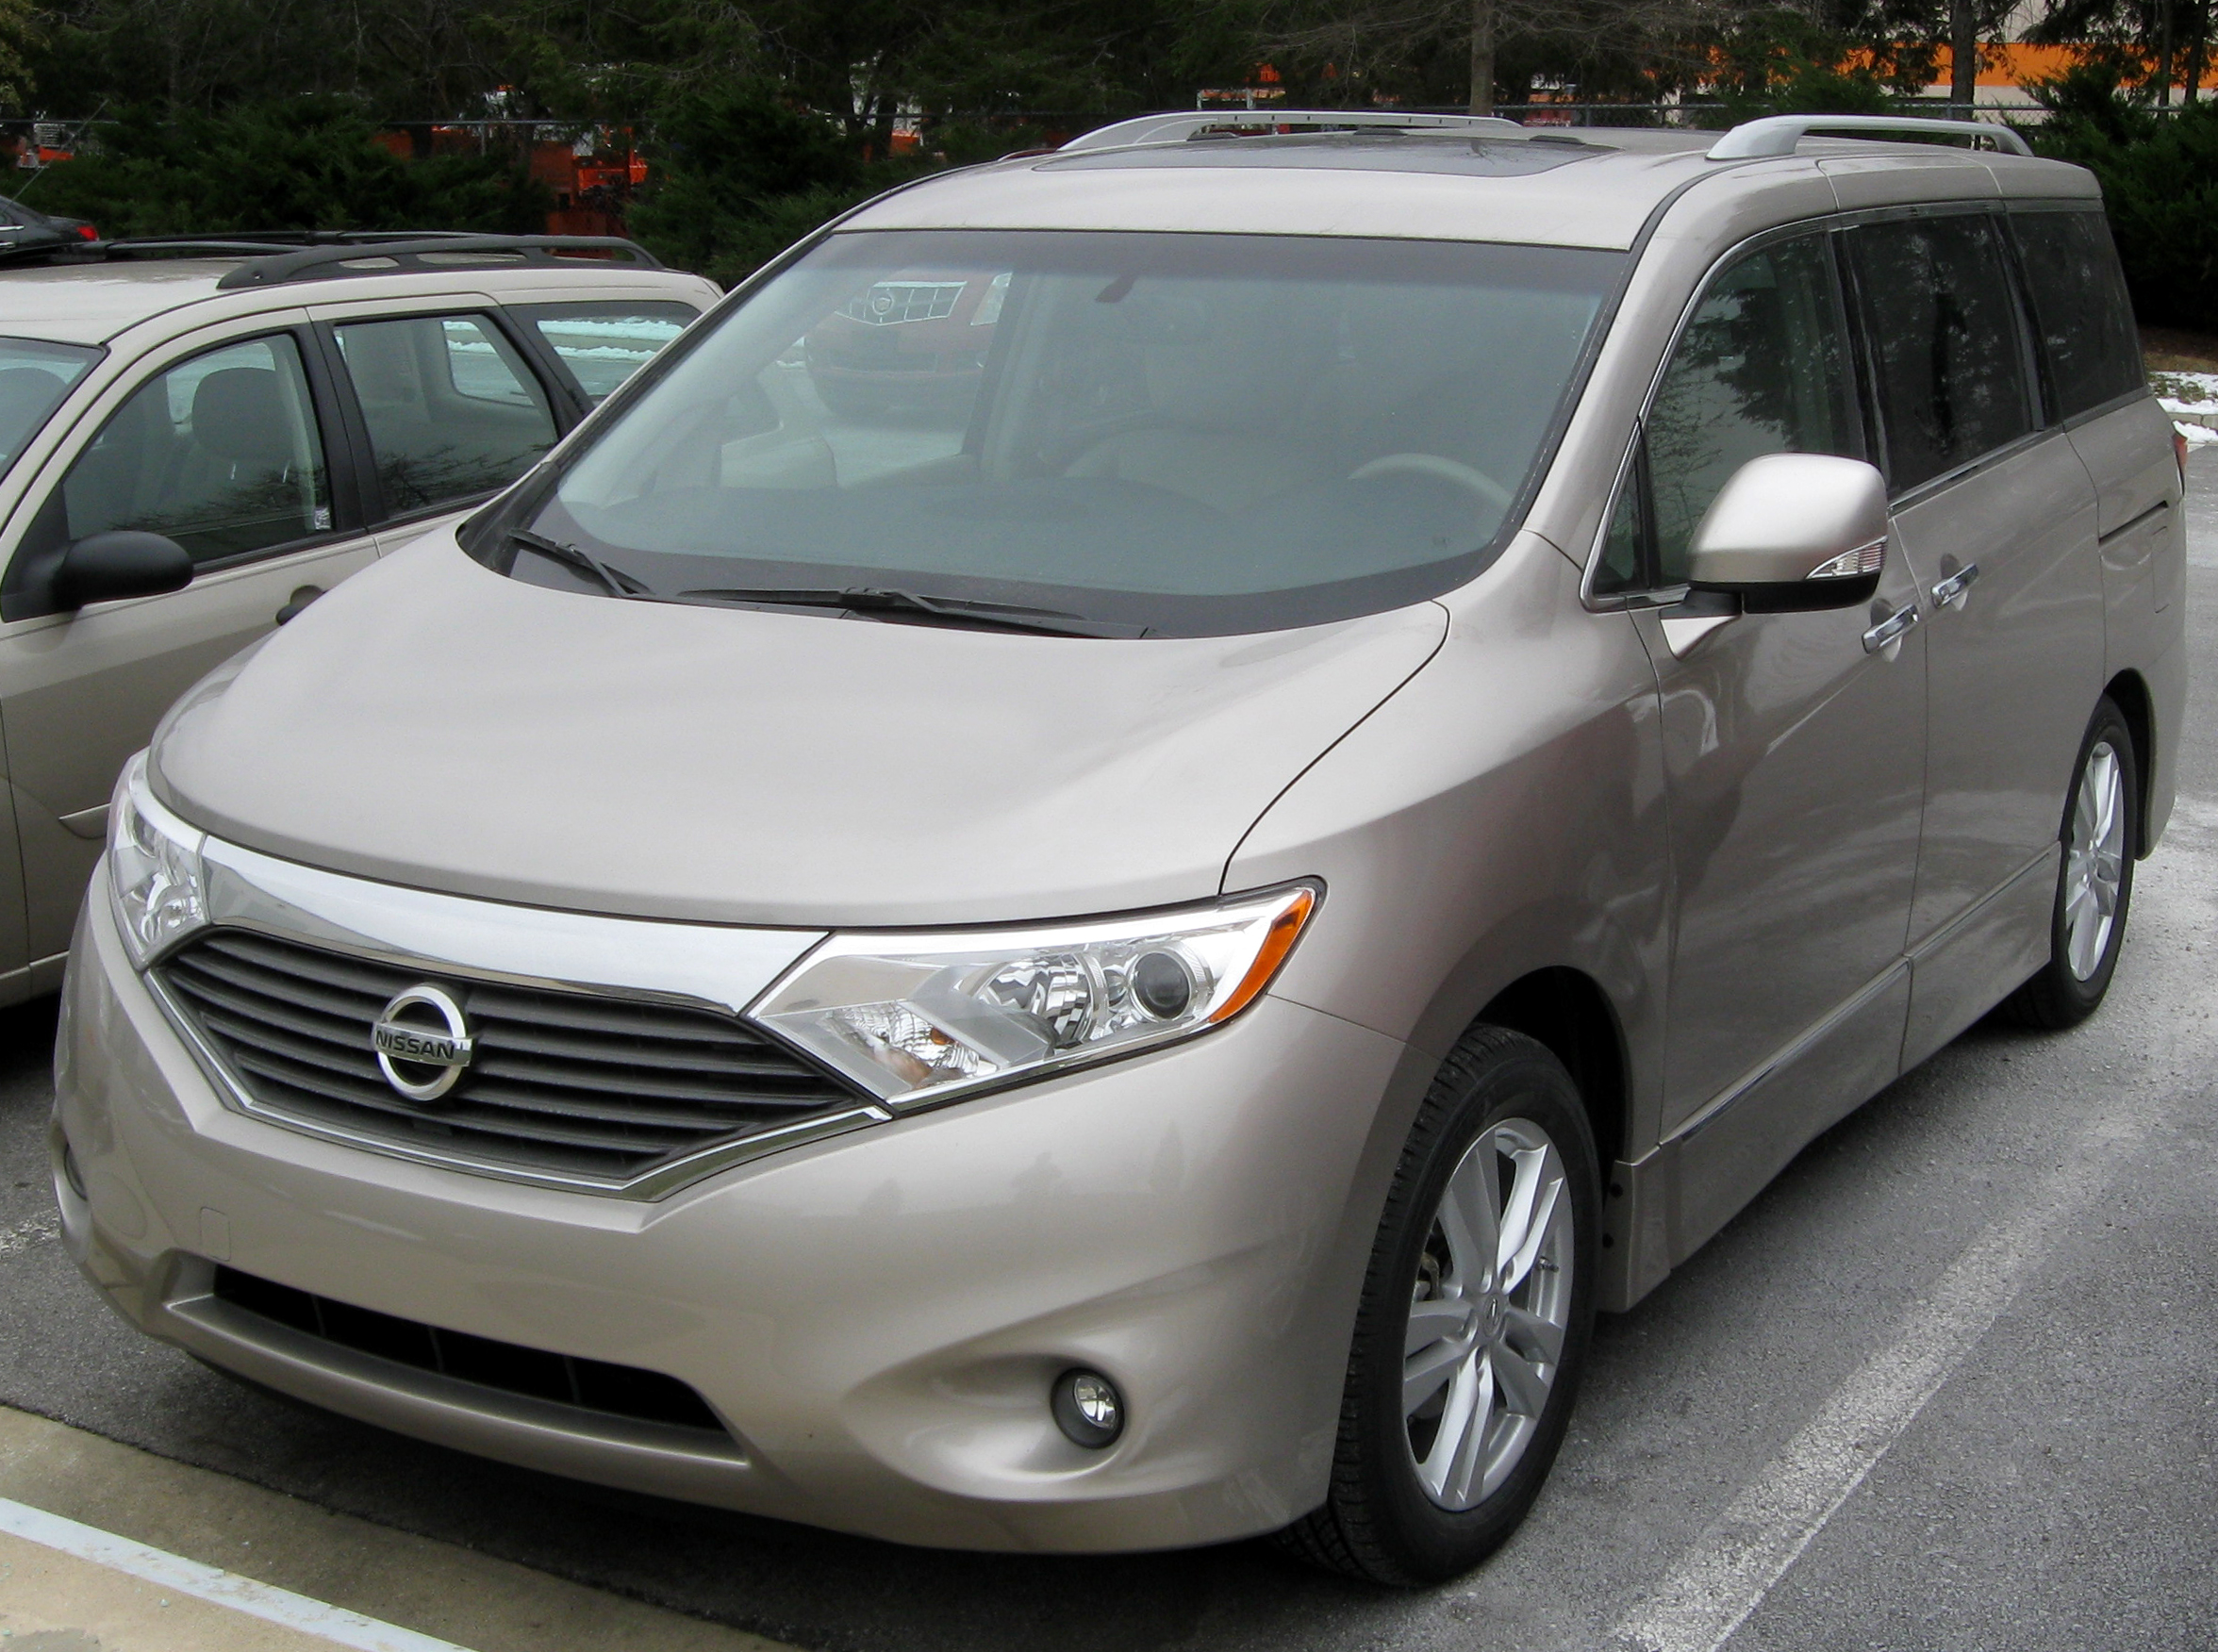 2009 nissan quest ff l pictures information and specs. Black Bedroom Furniture Sets. Home Design Ideas